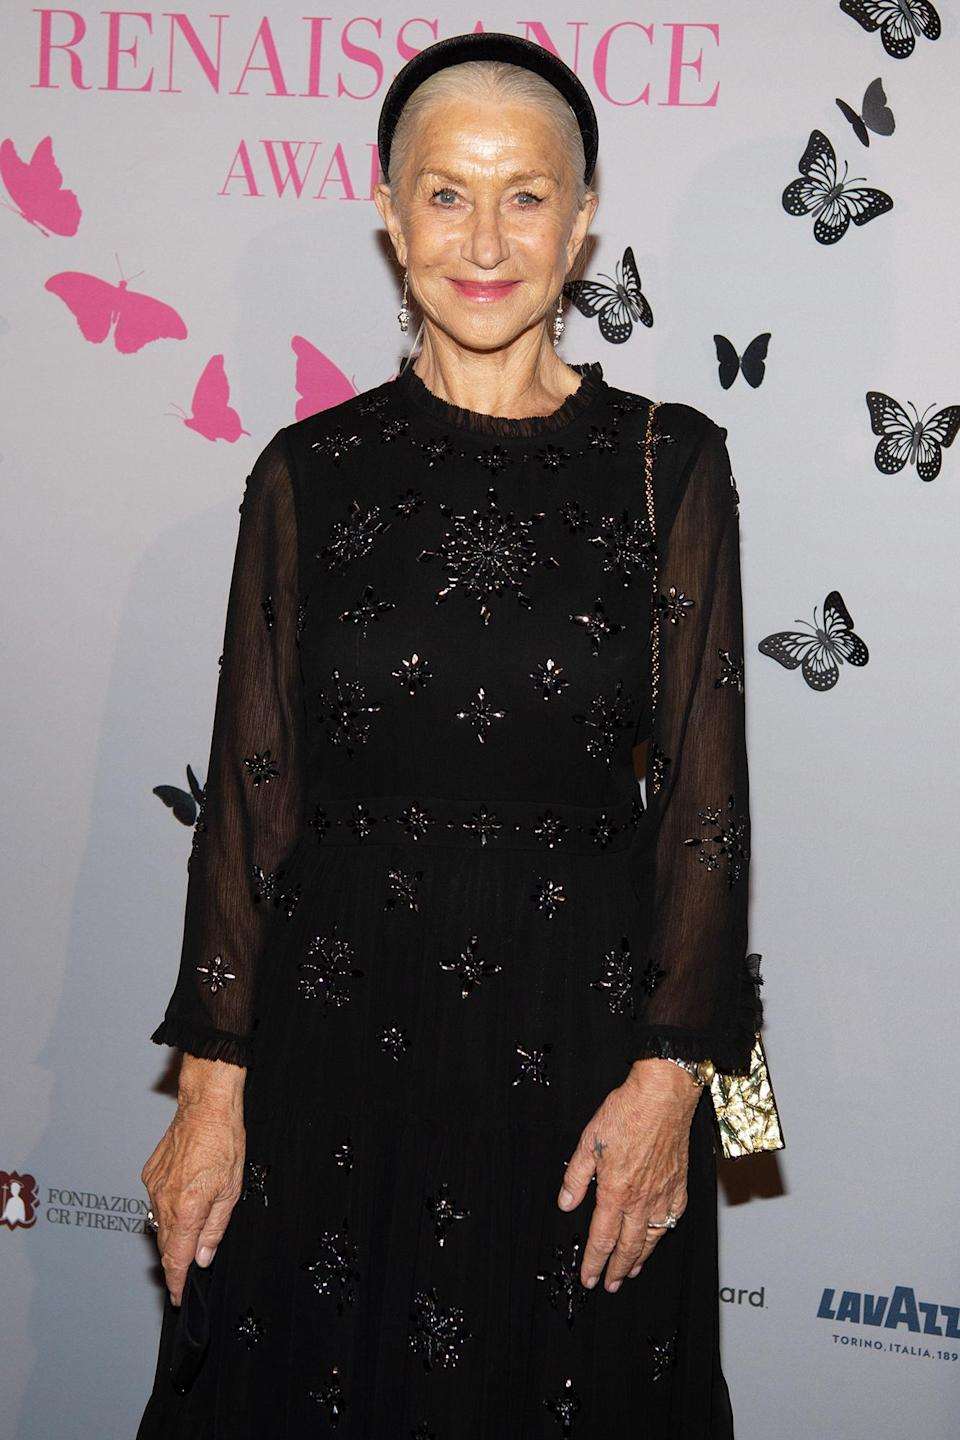 <p>Dame Helen Mirren arrives at the 2021 Renaissance Awards screening at Palazzo Vecchio on Oct. 11 in Florence, Italy. </p>